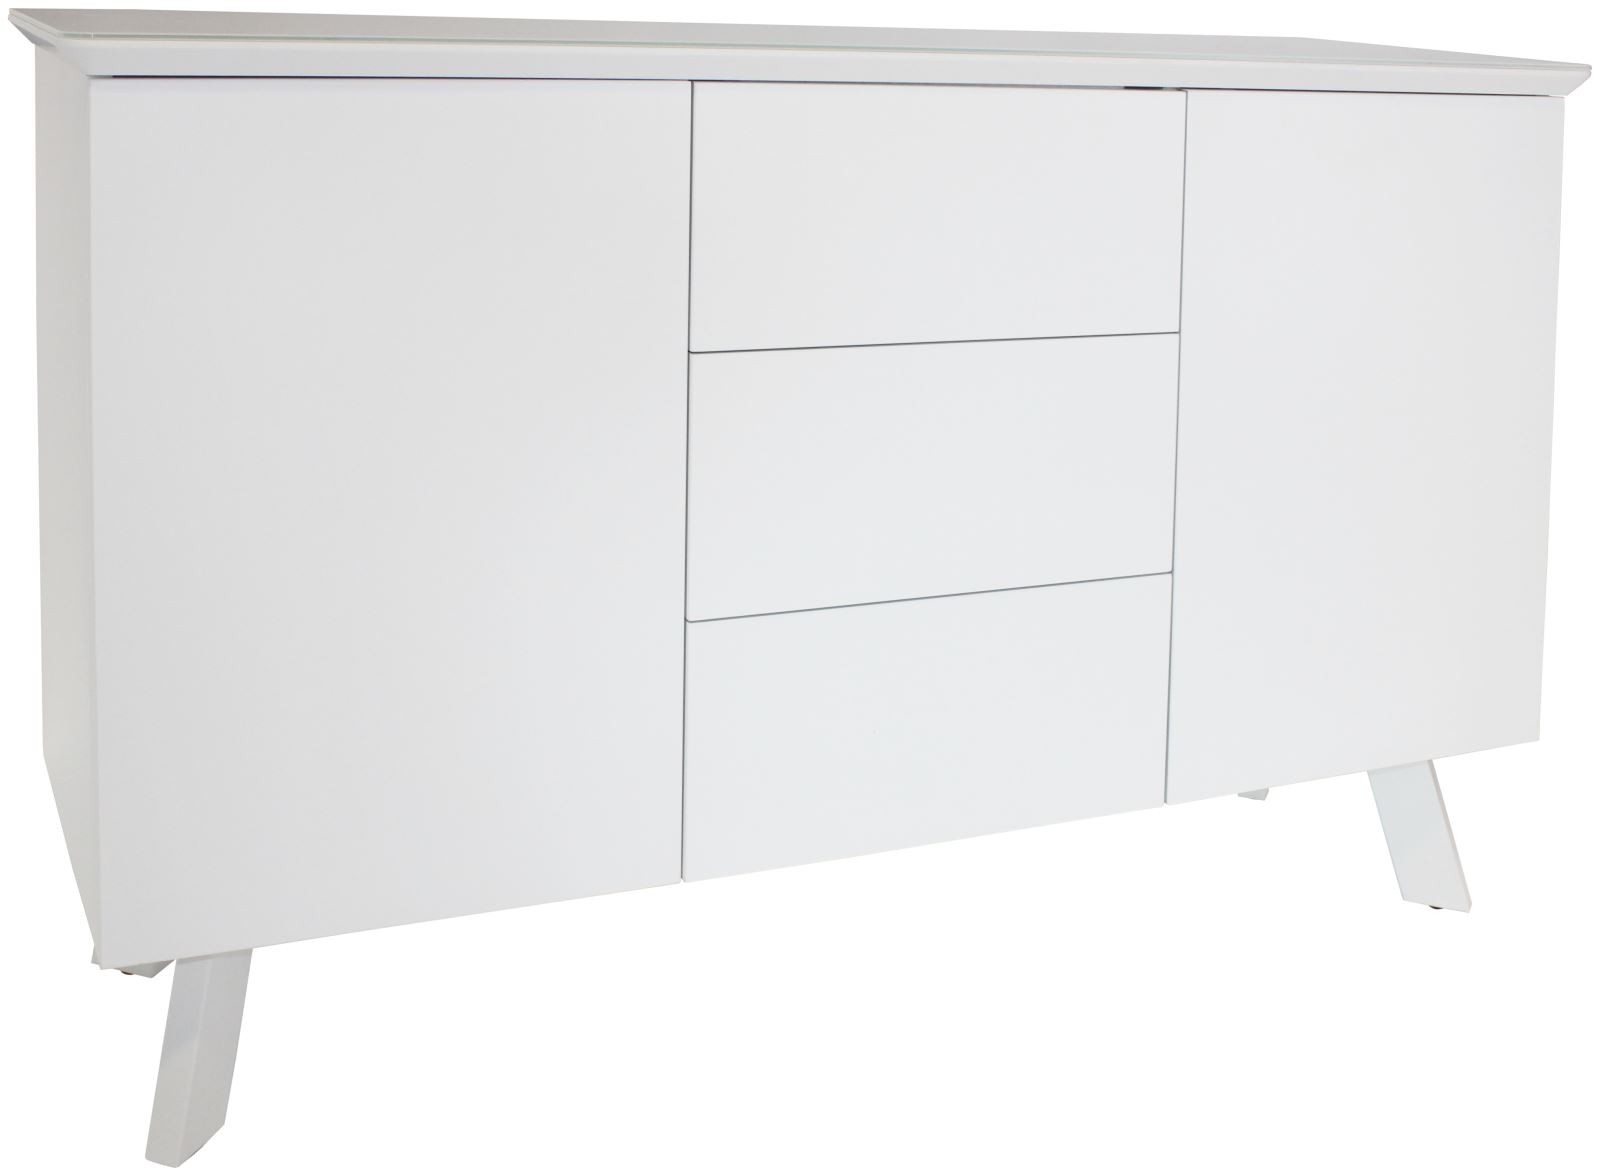 CONTEMPORARY Large Sideboard - White